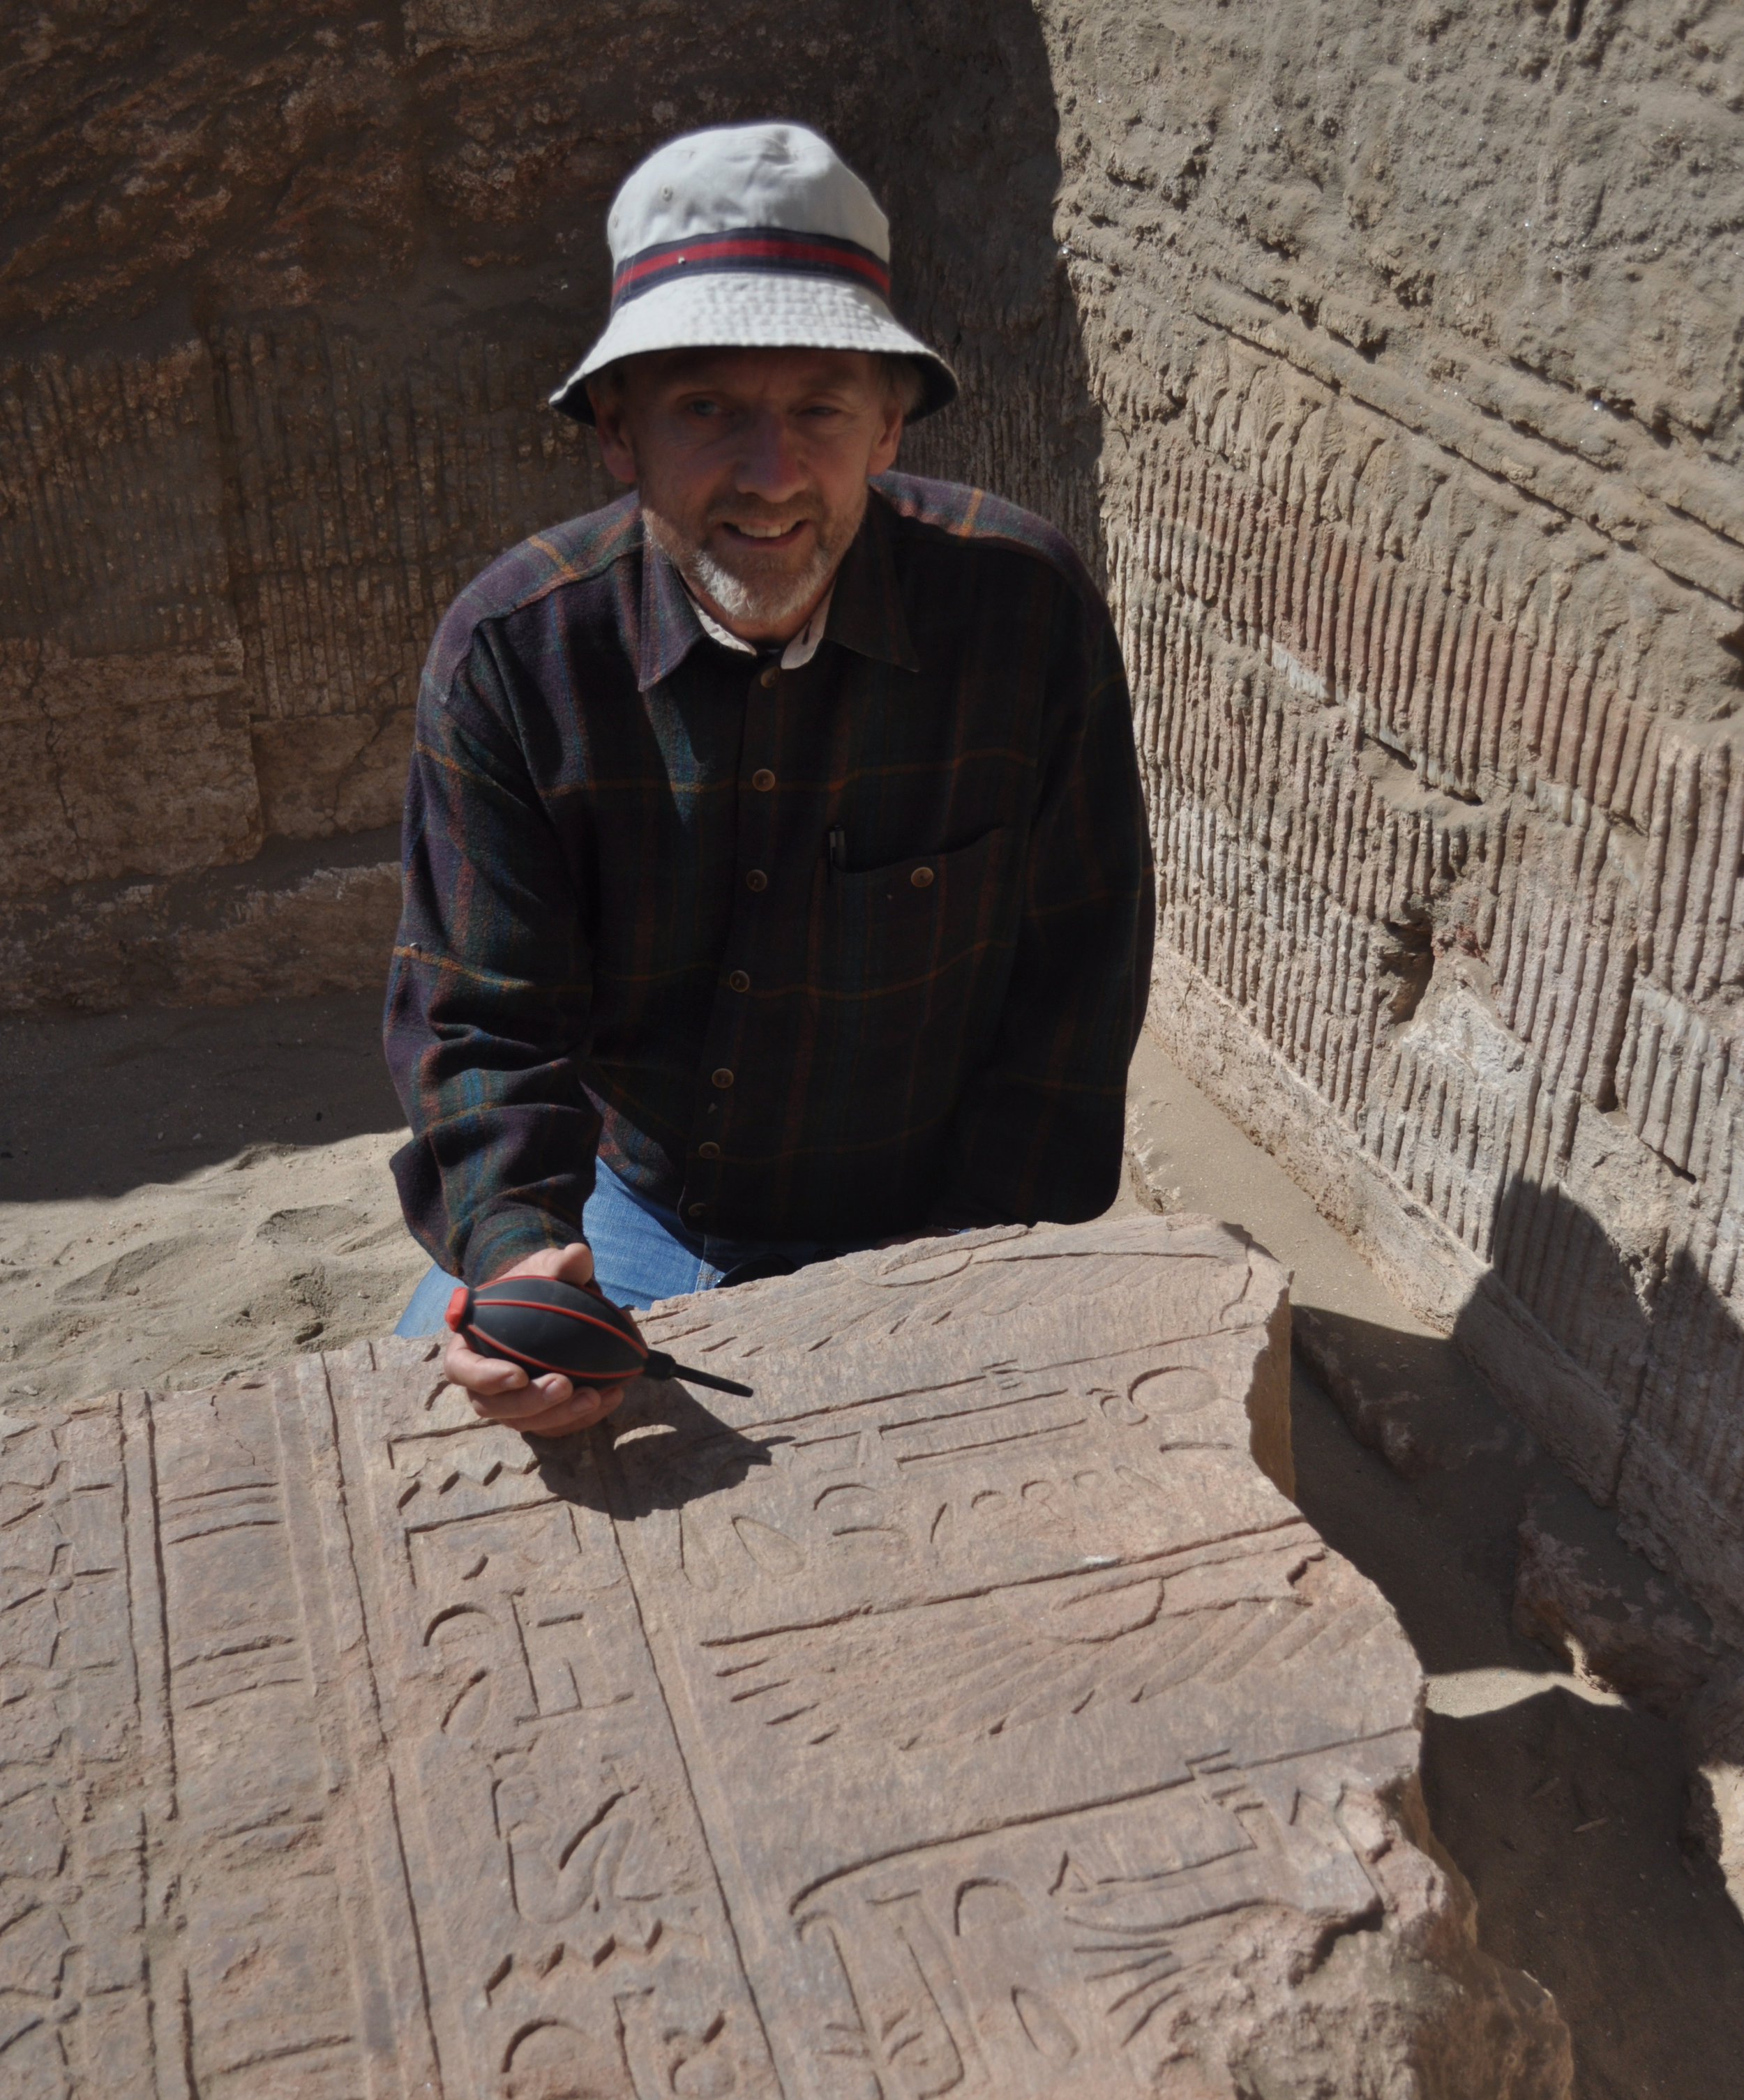 Since 2018, I am working on the excavations of the temple of Isis in Berenike, on the Red Sea COast. This temple connects Egypt to the trade routes to India, but also to Meroë in the Sudan.